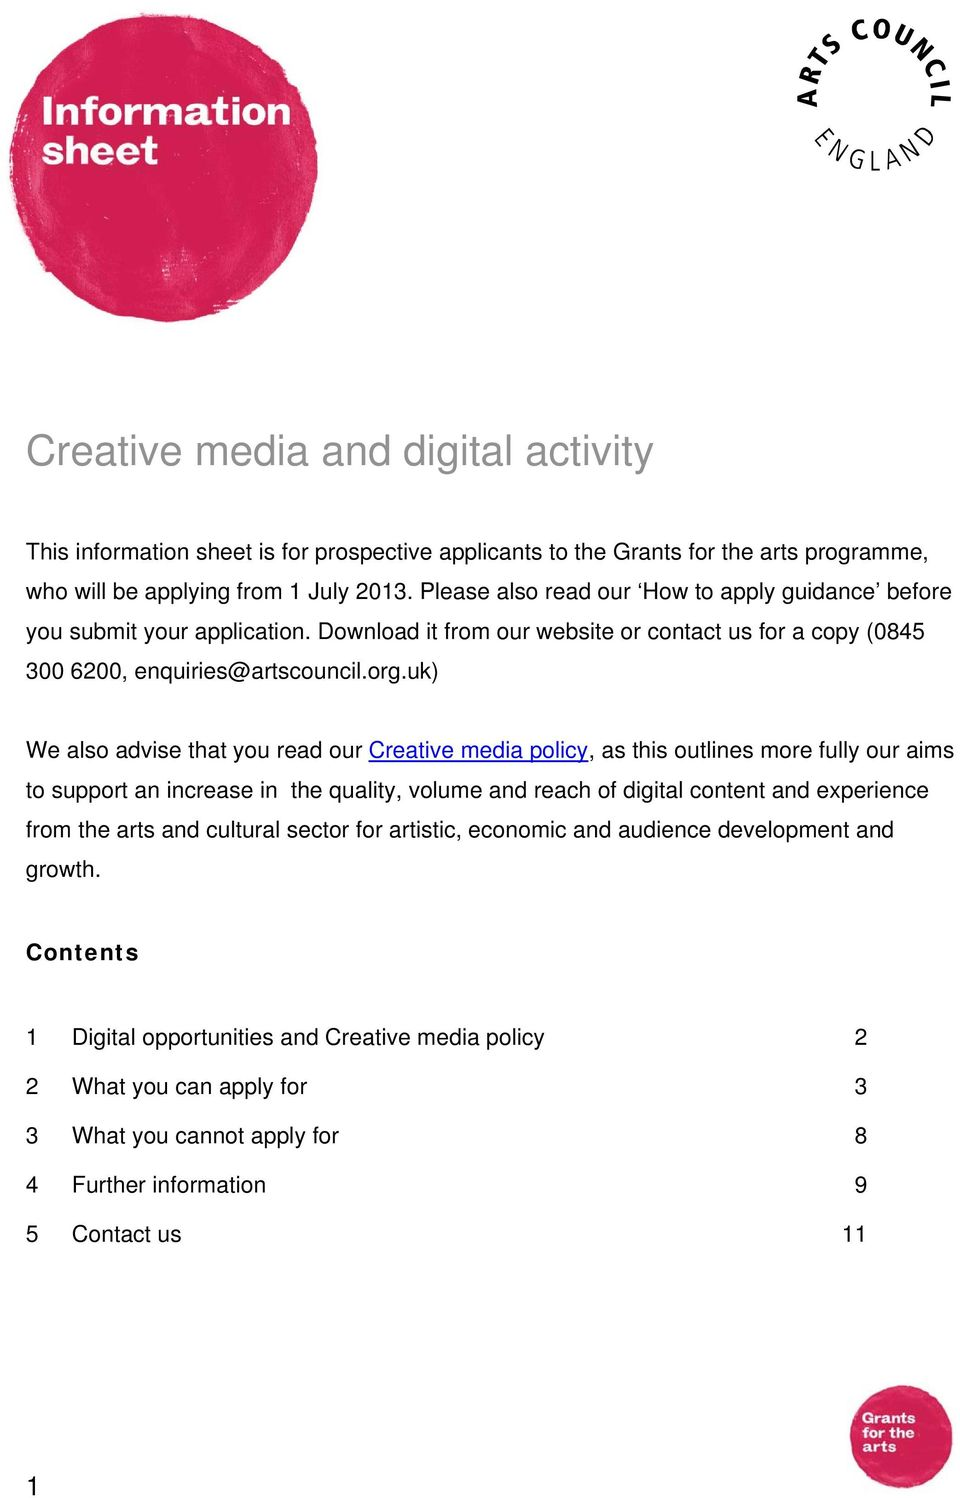 uk) We also advise that you read our Creative media policy, as this outlines more fully our aims to support an increase in the quality, volume and reach of digital content and experience from the